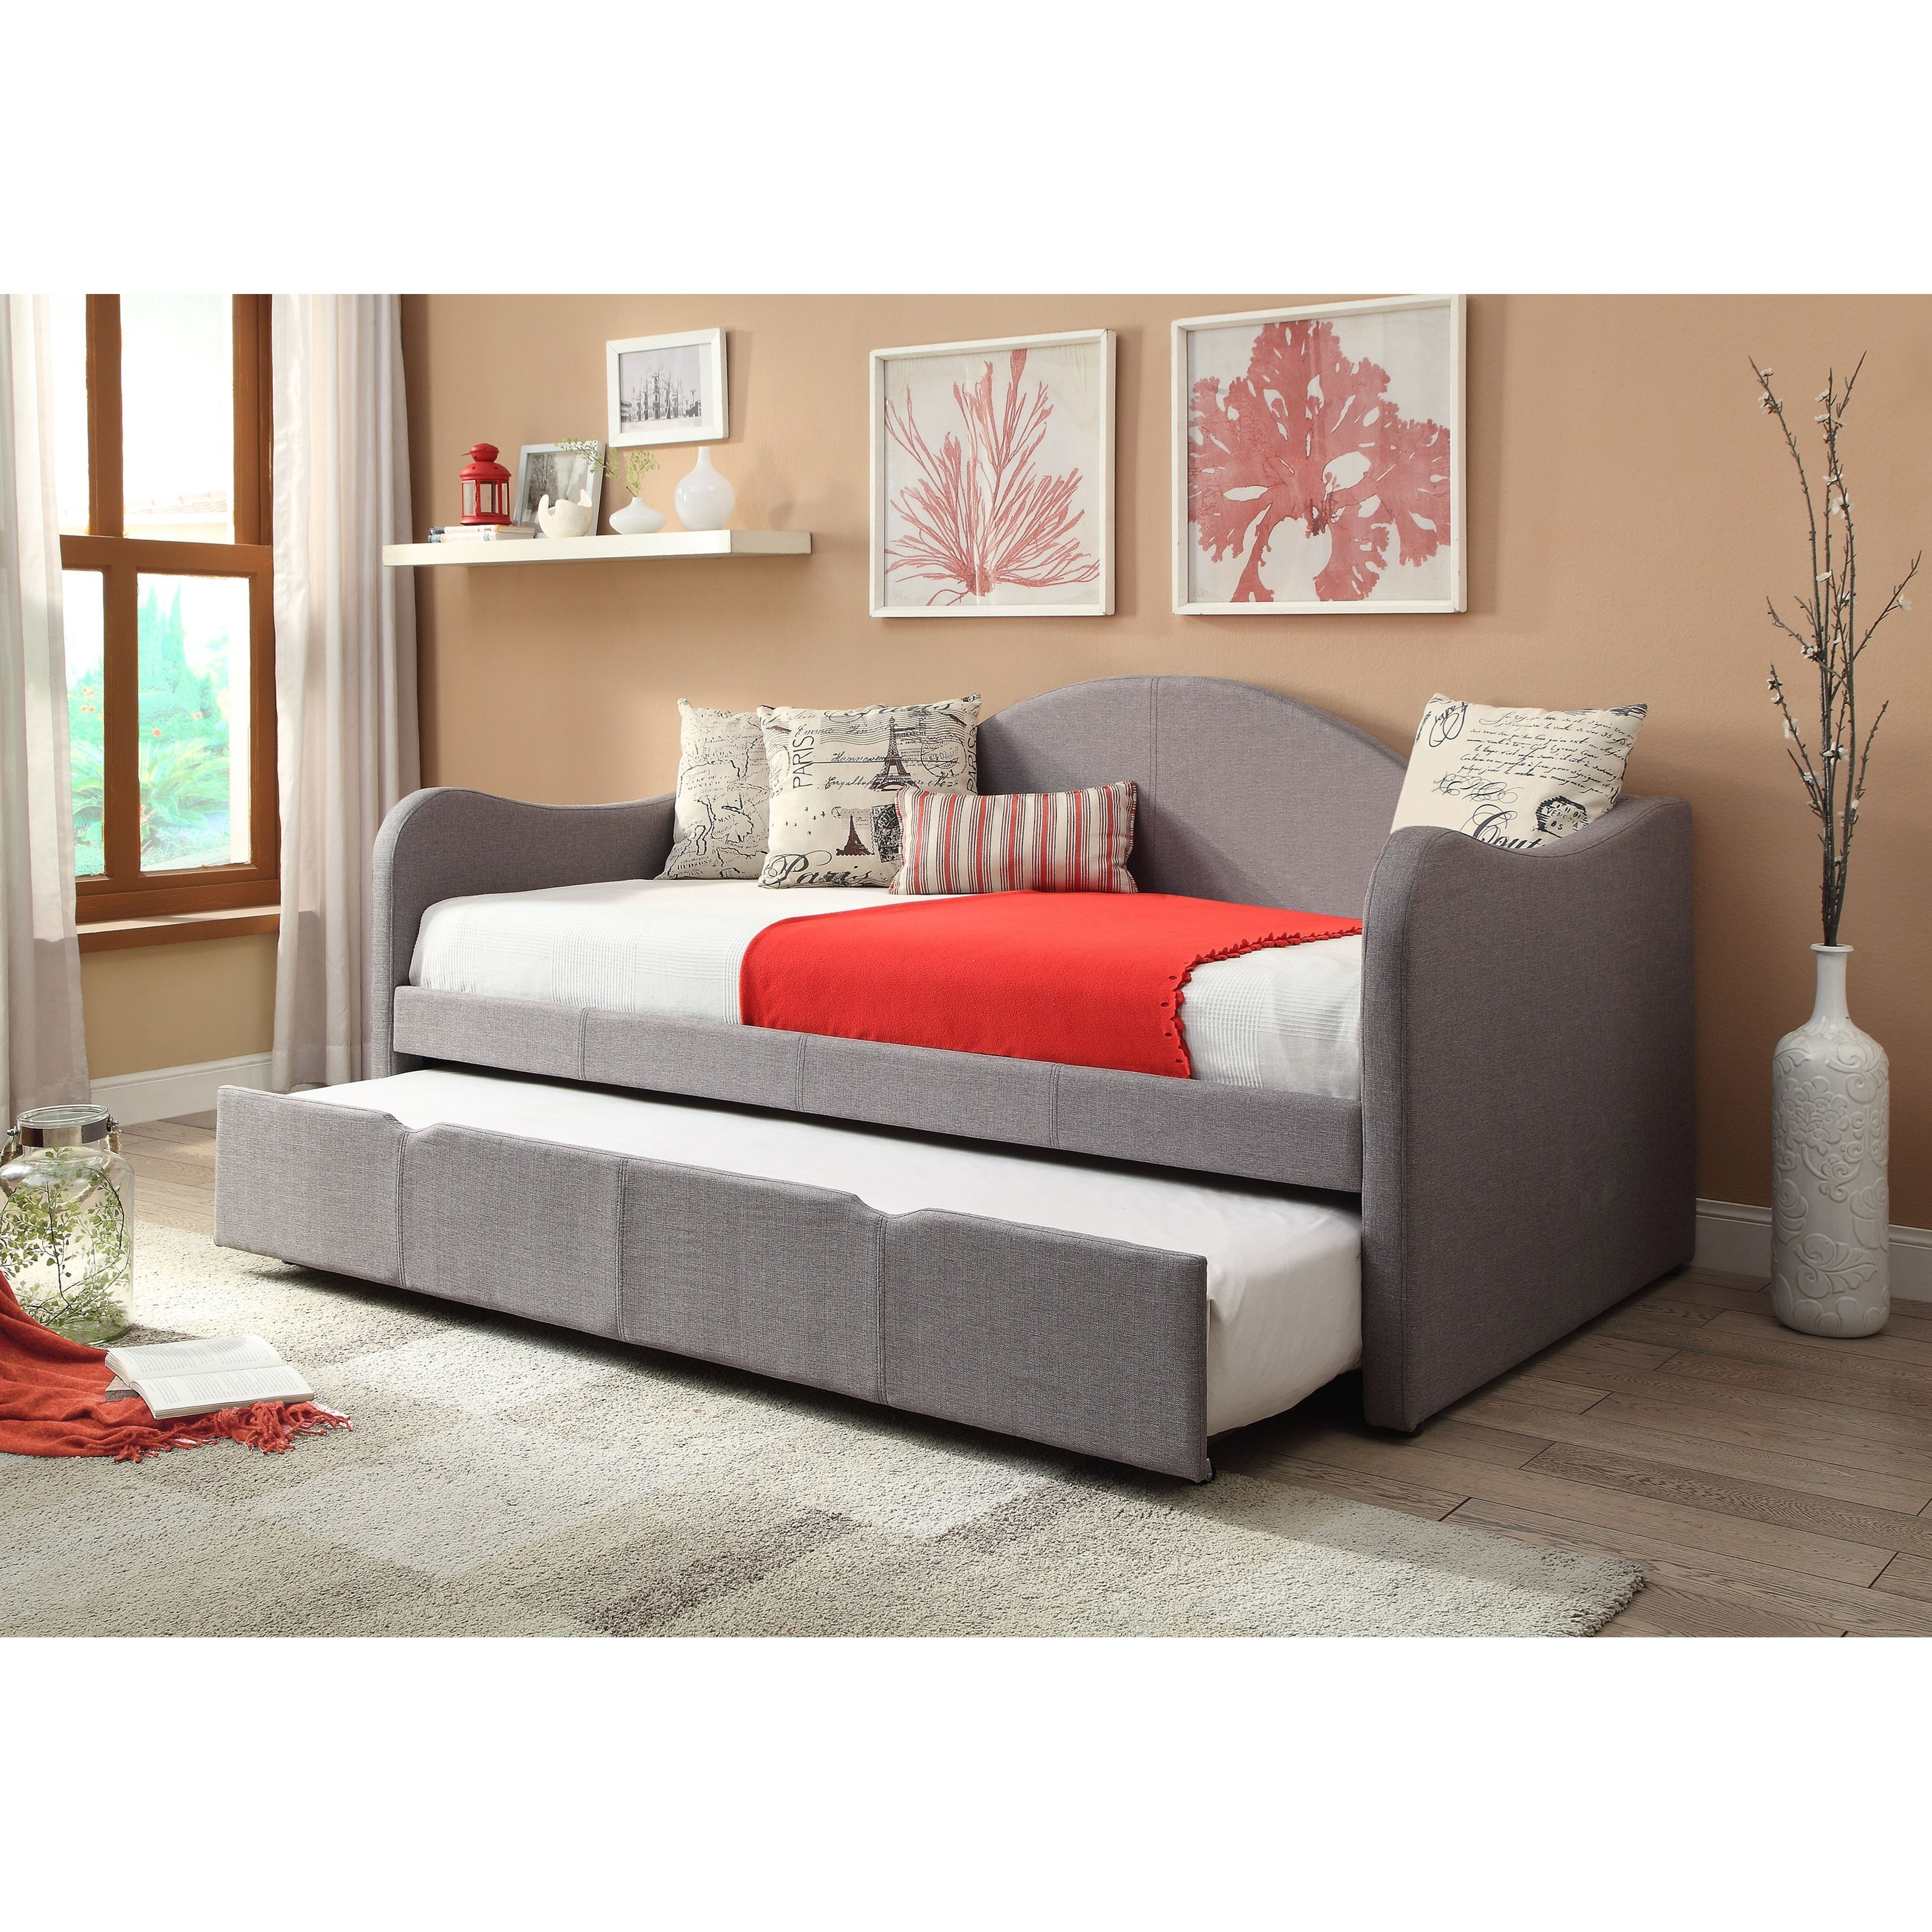 Upholstered Daybed by Powell at HomeWorld Furniture